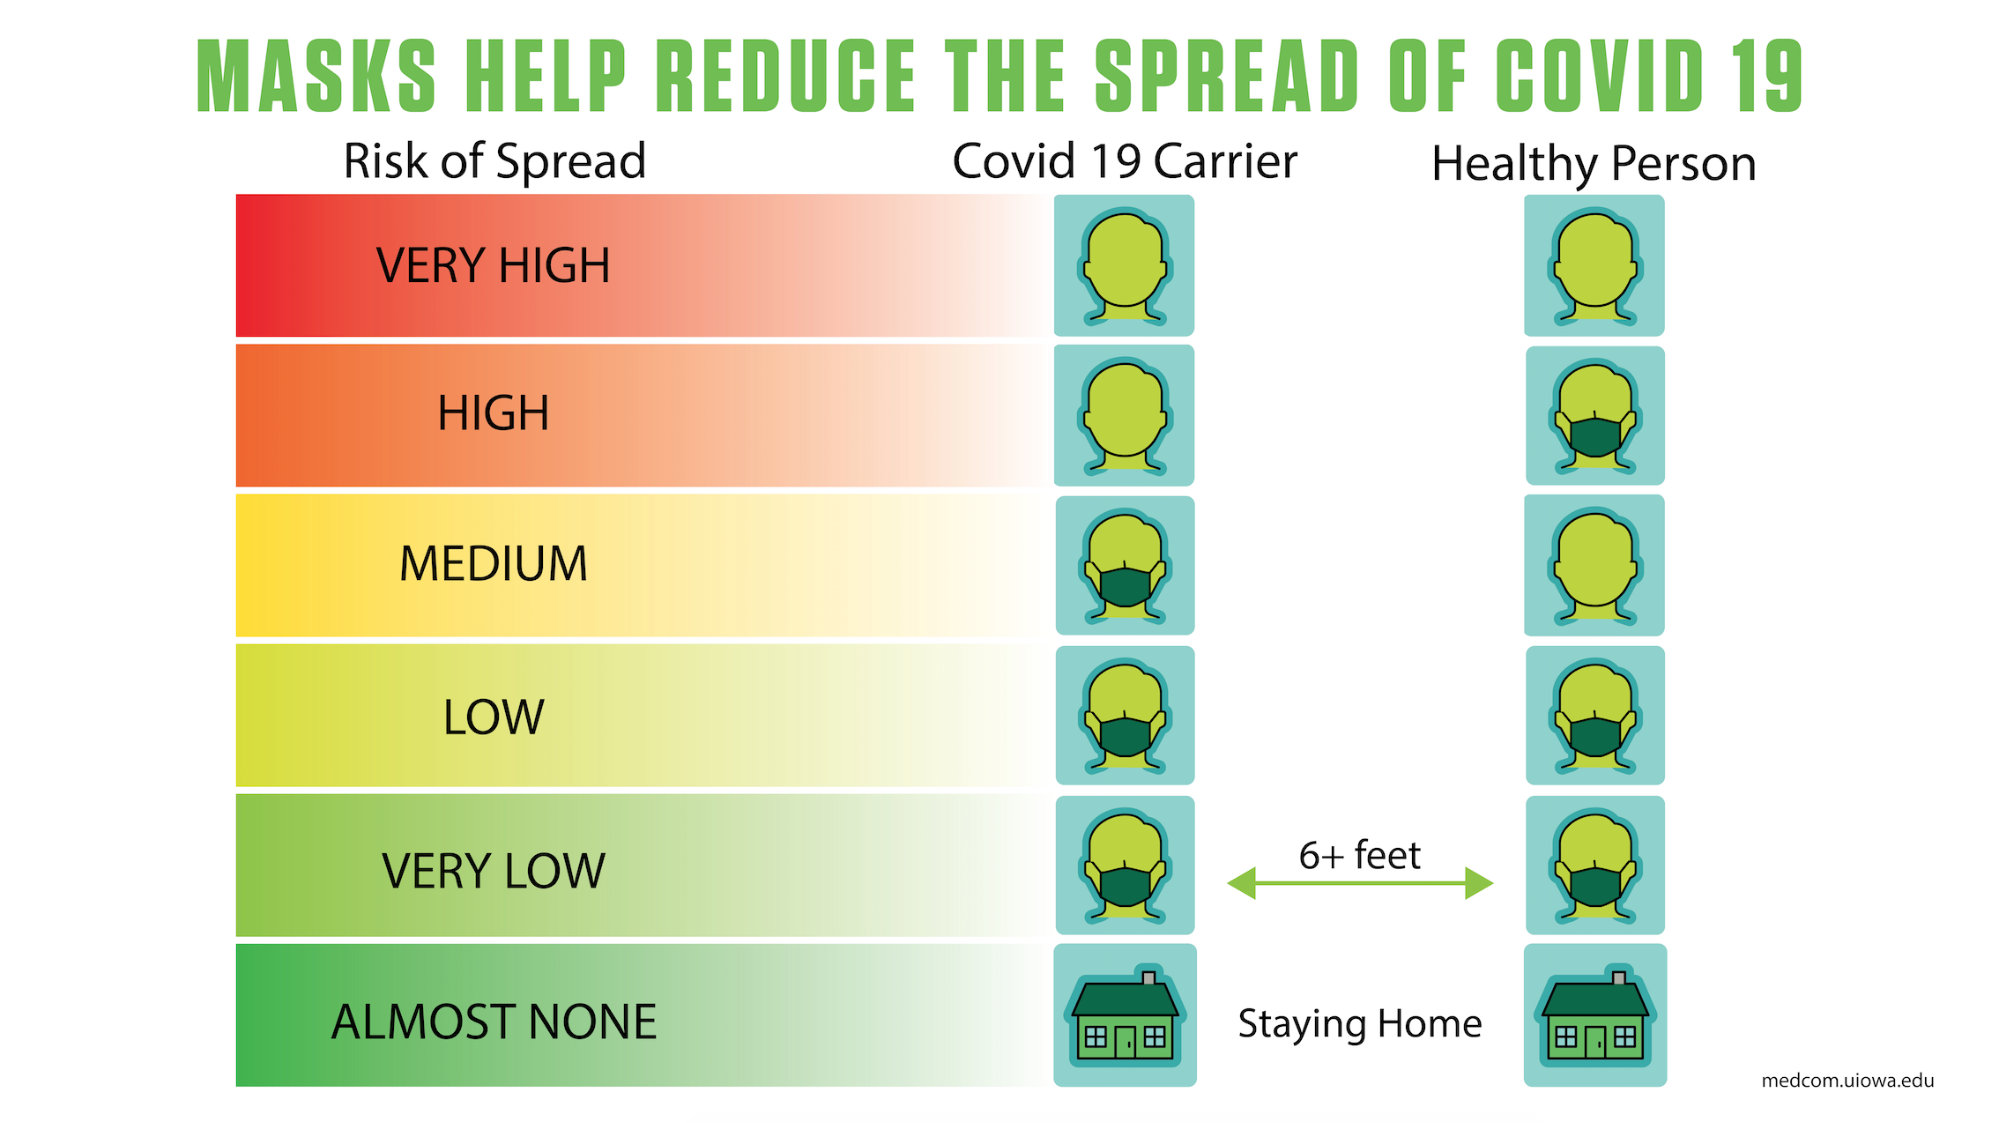 Chart showing how masks help reduce the spread of COVID-19